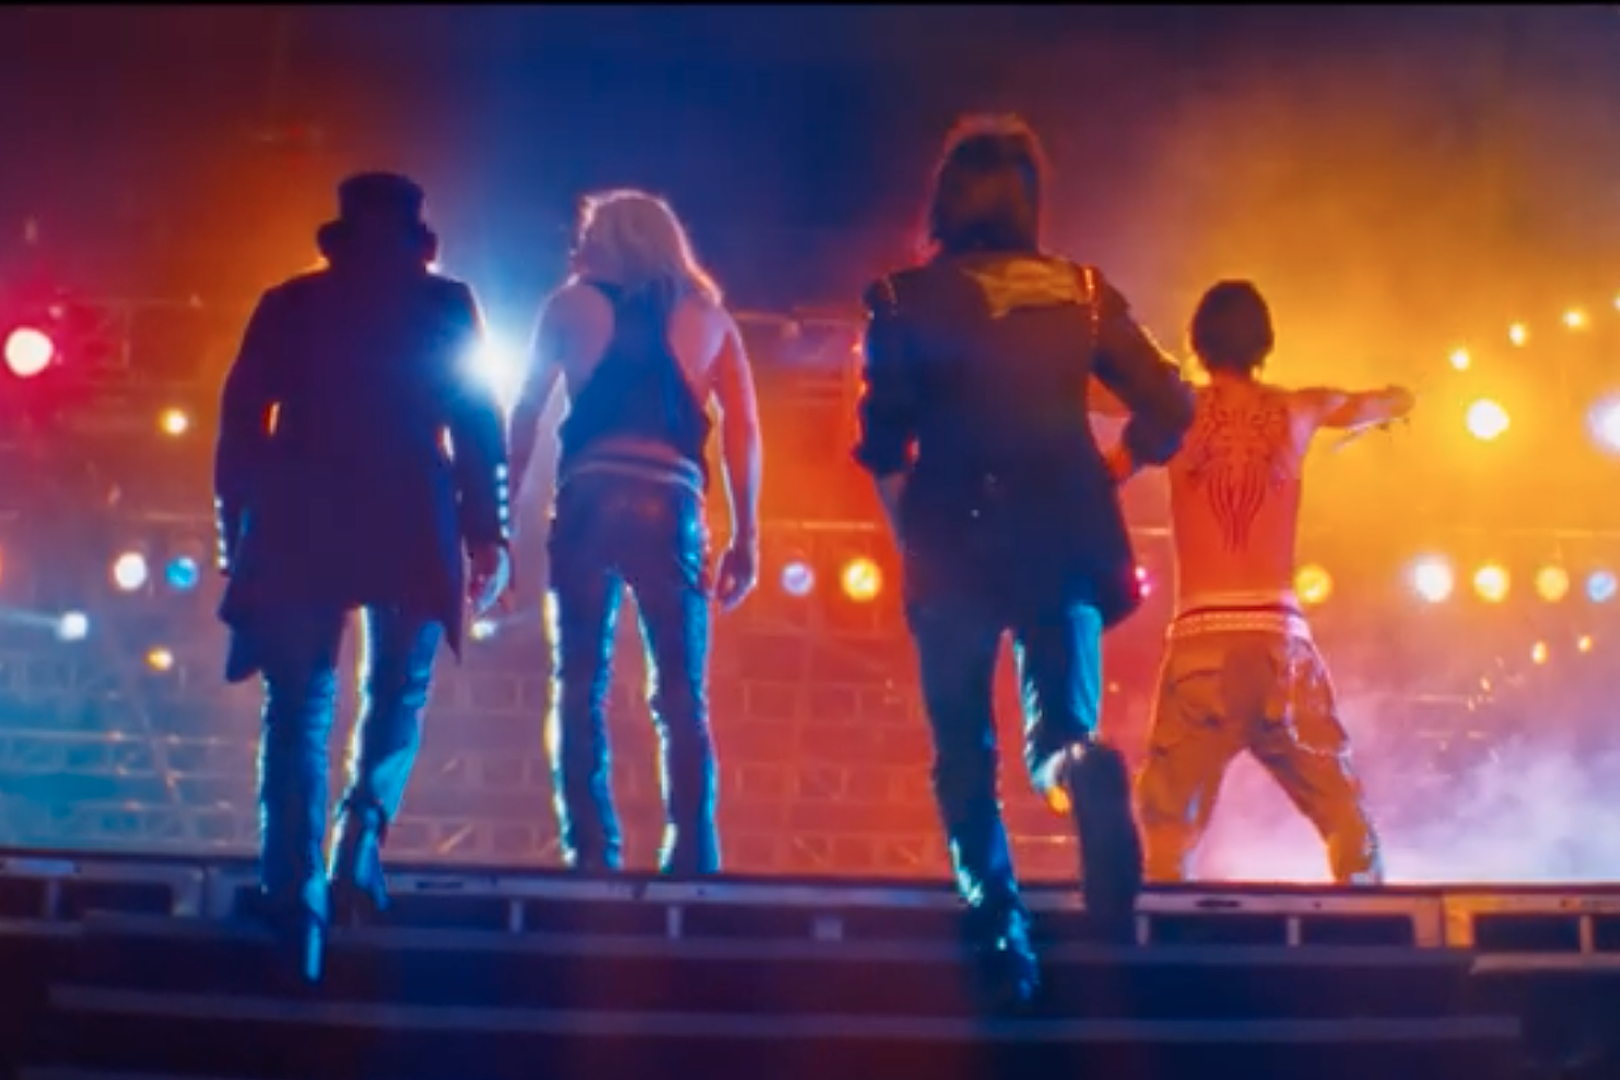 Watch the Full Trailer for the Motley Crue Movie 'The Dirt'